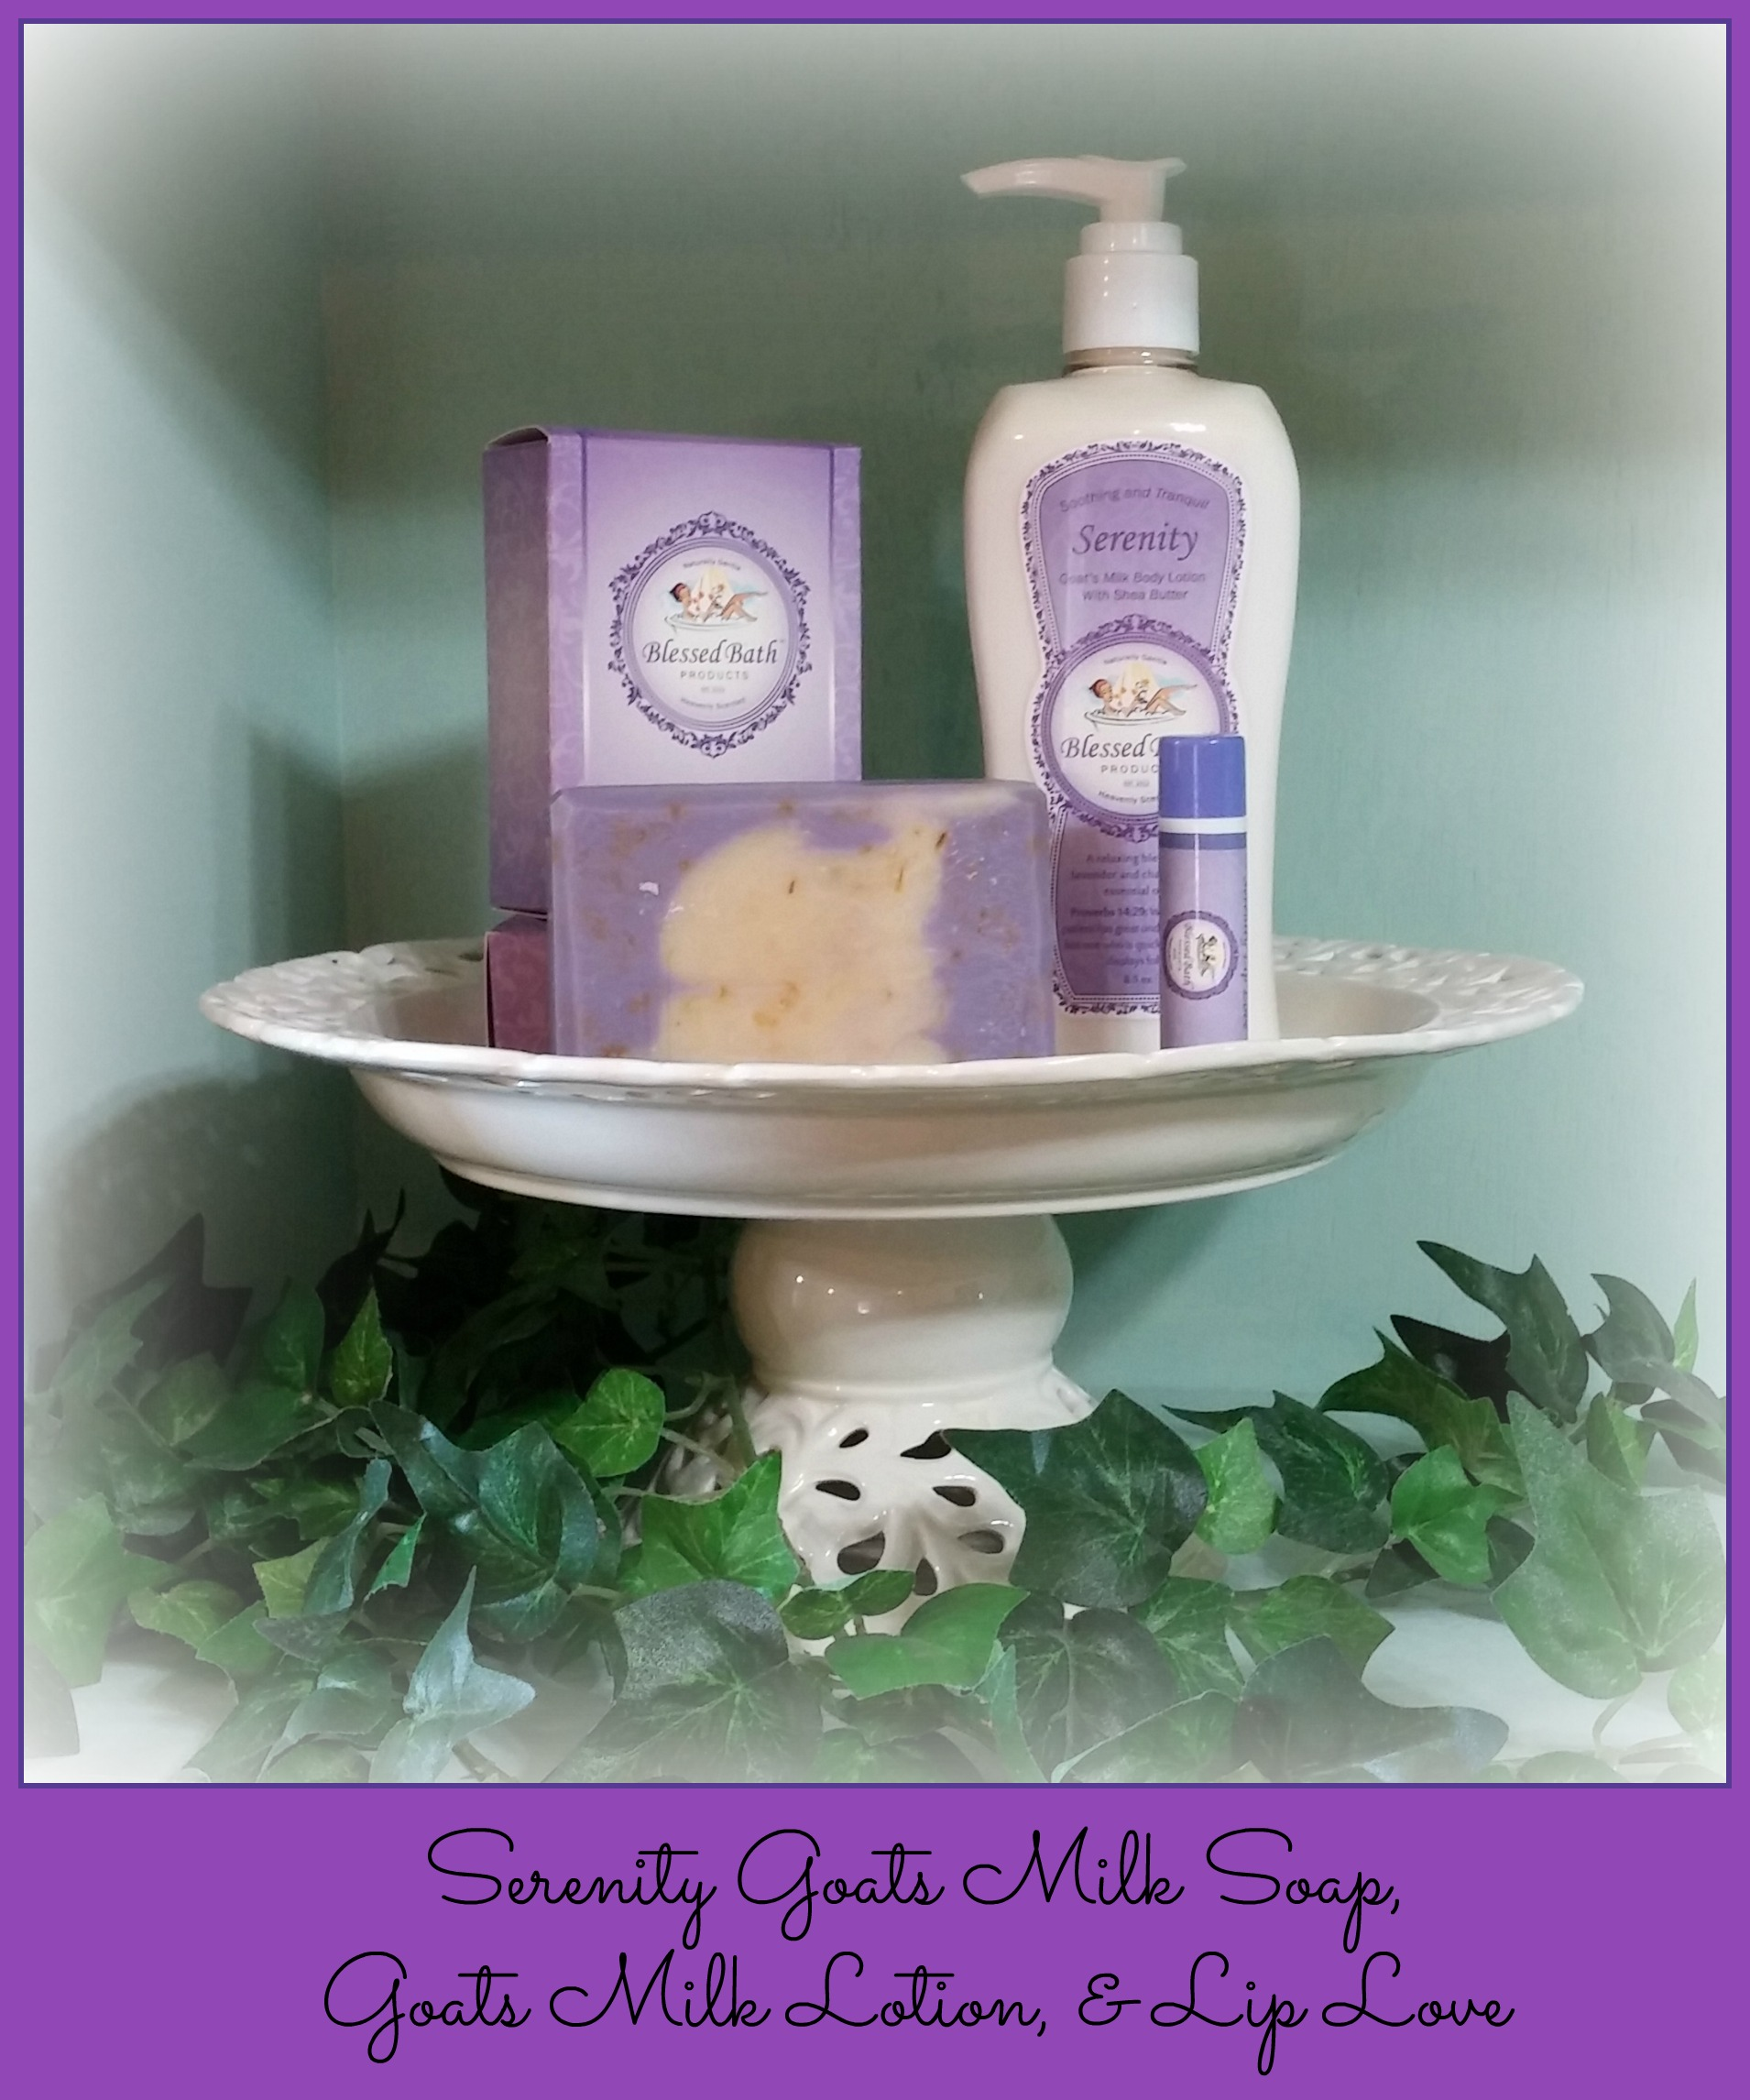 Serenity Goats Milk Lotion